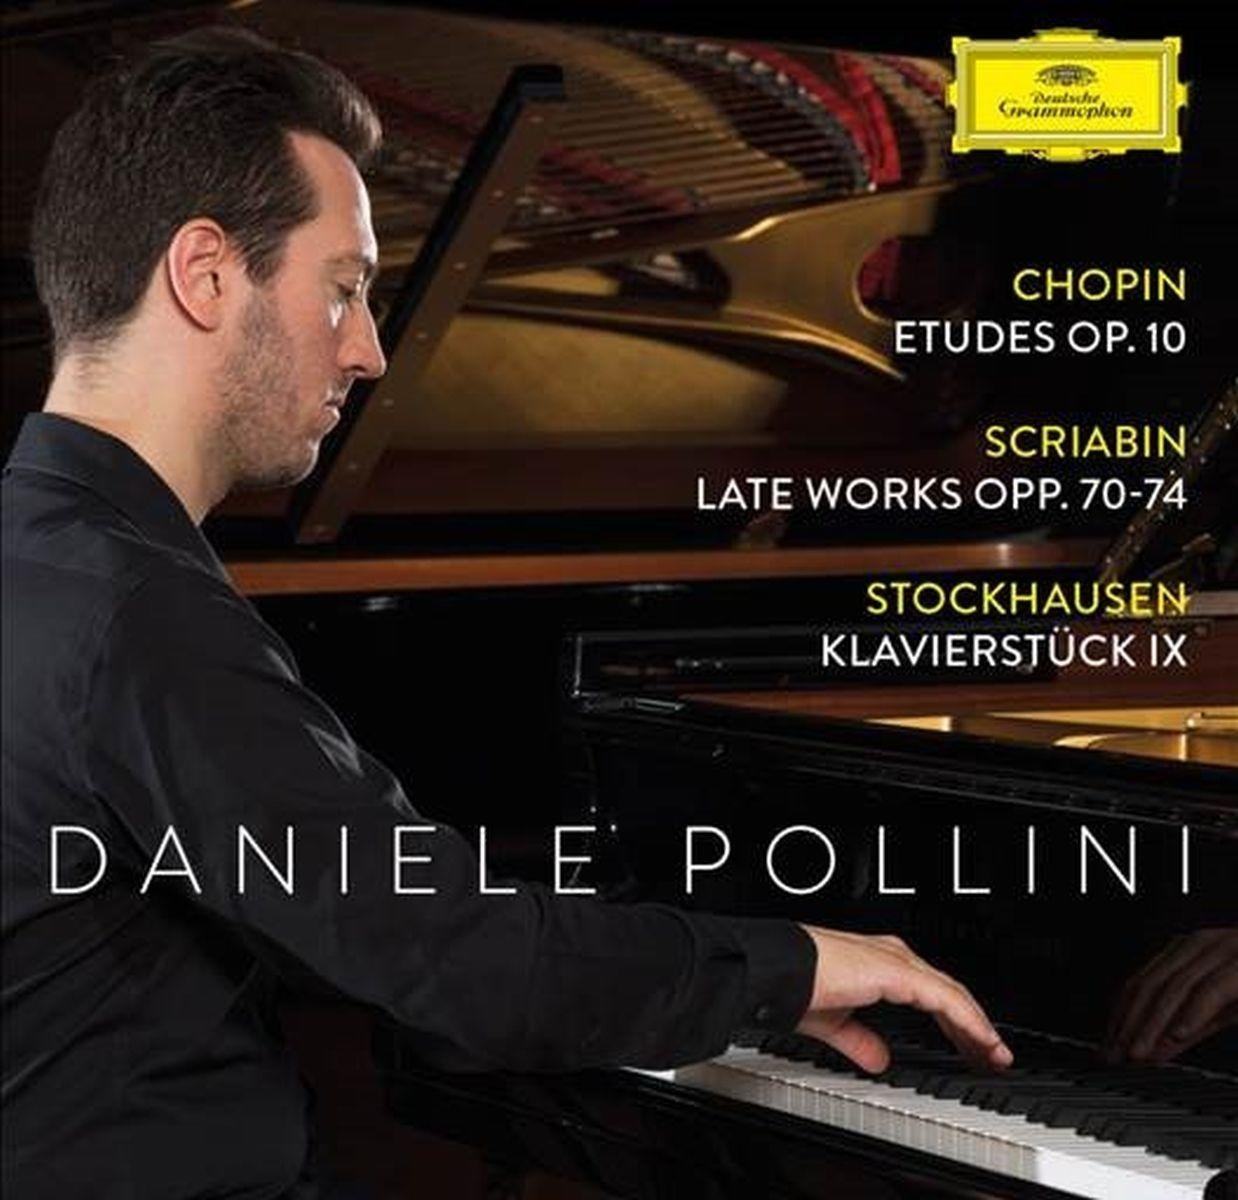 CD : Daniele Pollini - Etudes Op 10 / Scriabin: Late Works Opp 70-74